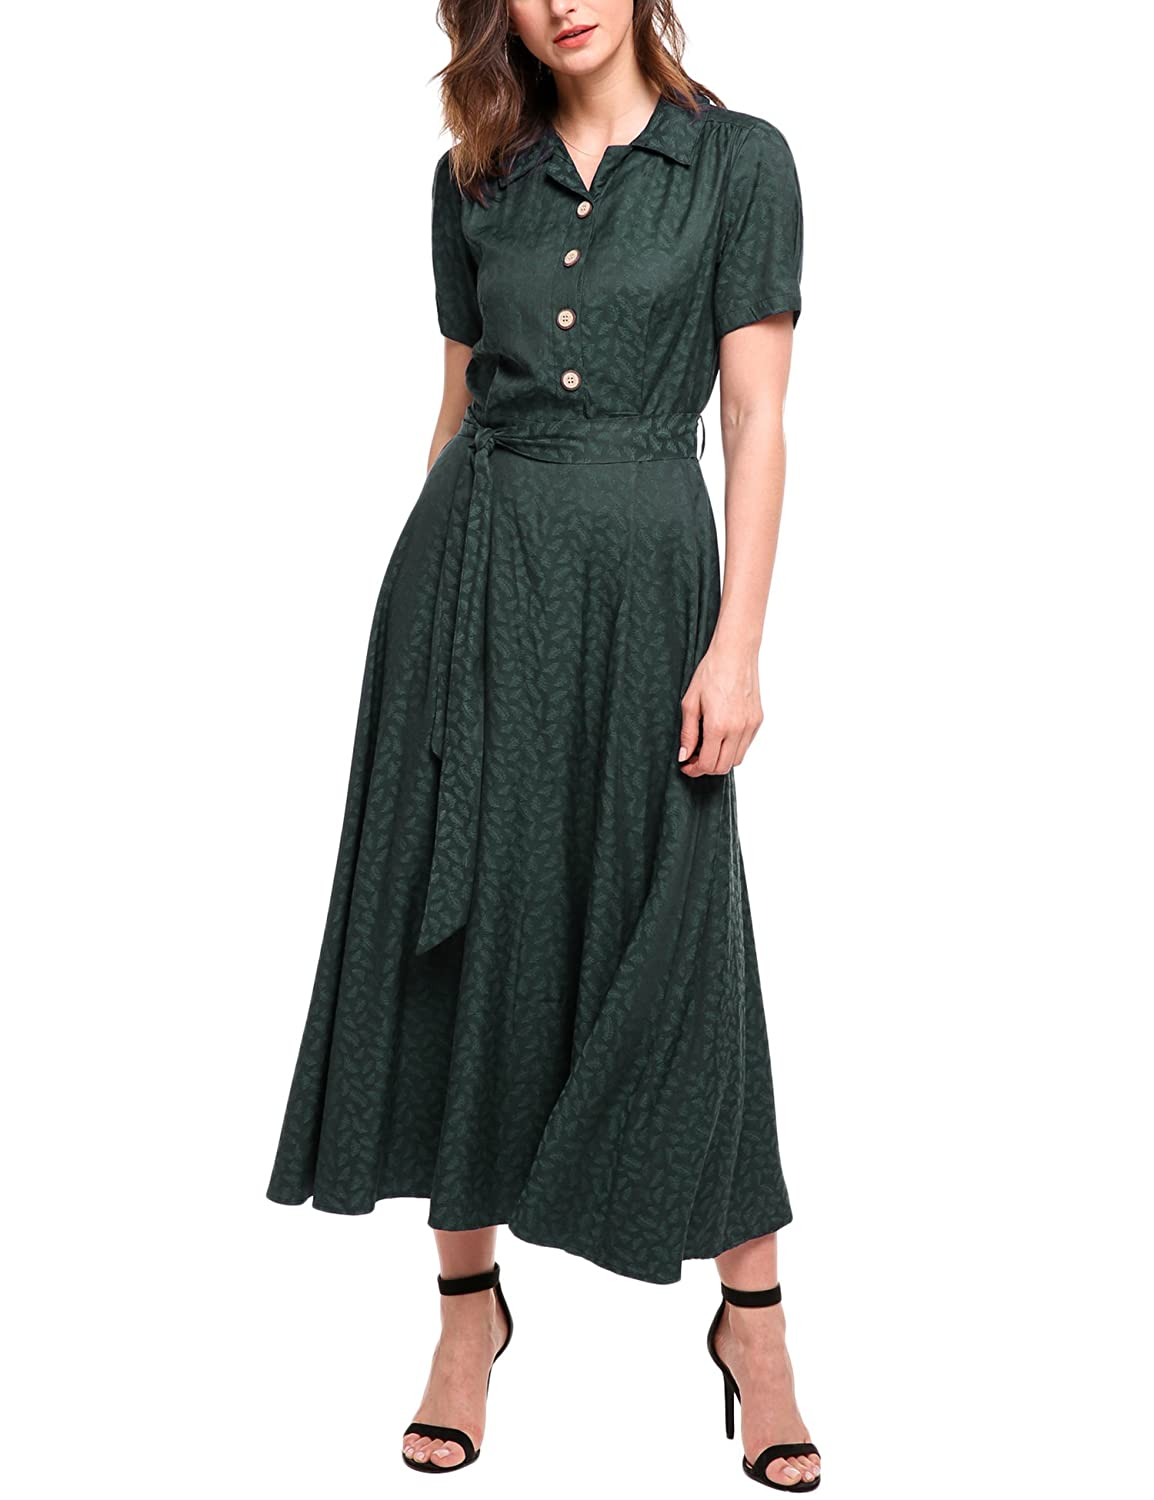 1940s Day Dress Styles, House Dresses ACEVOG Women Vintage Style Turn Down Collar Short Sleeve High Waist Maxi Swing Dress with Belt $38.99 AT vintagedancer.com